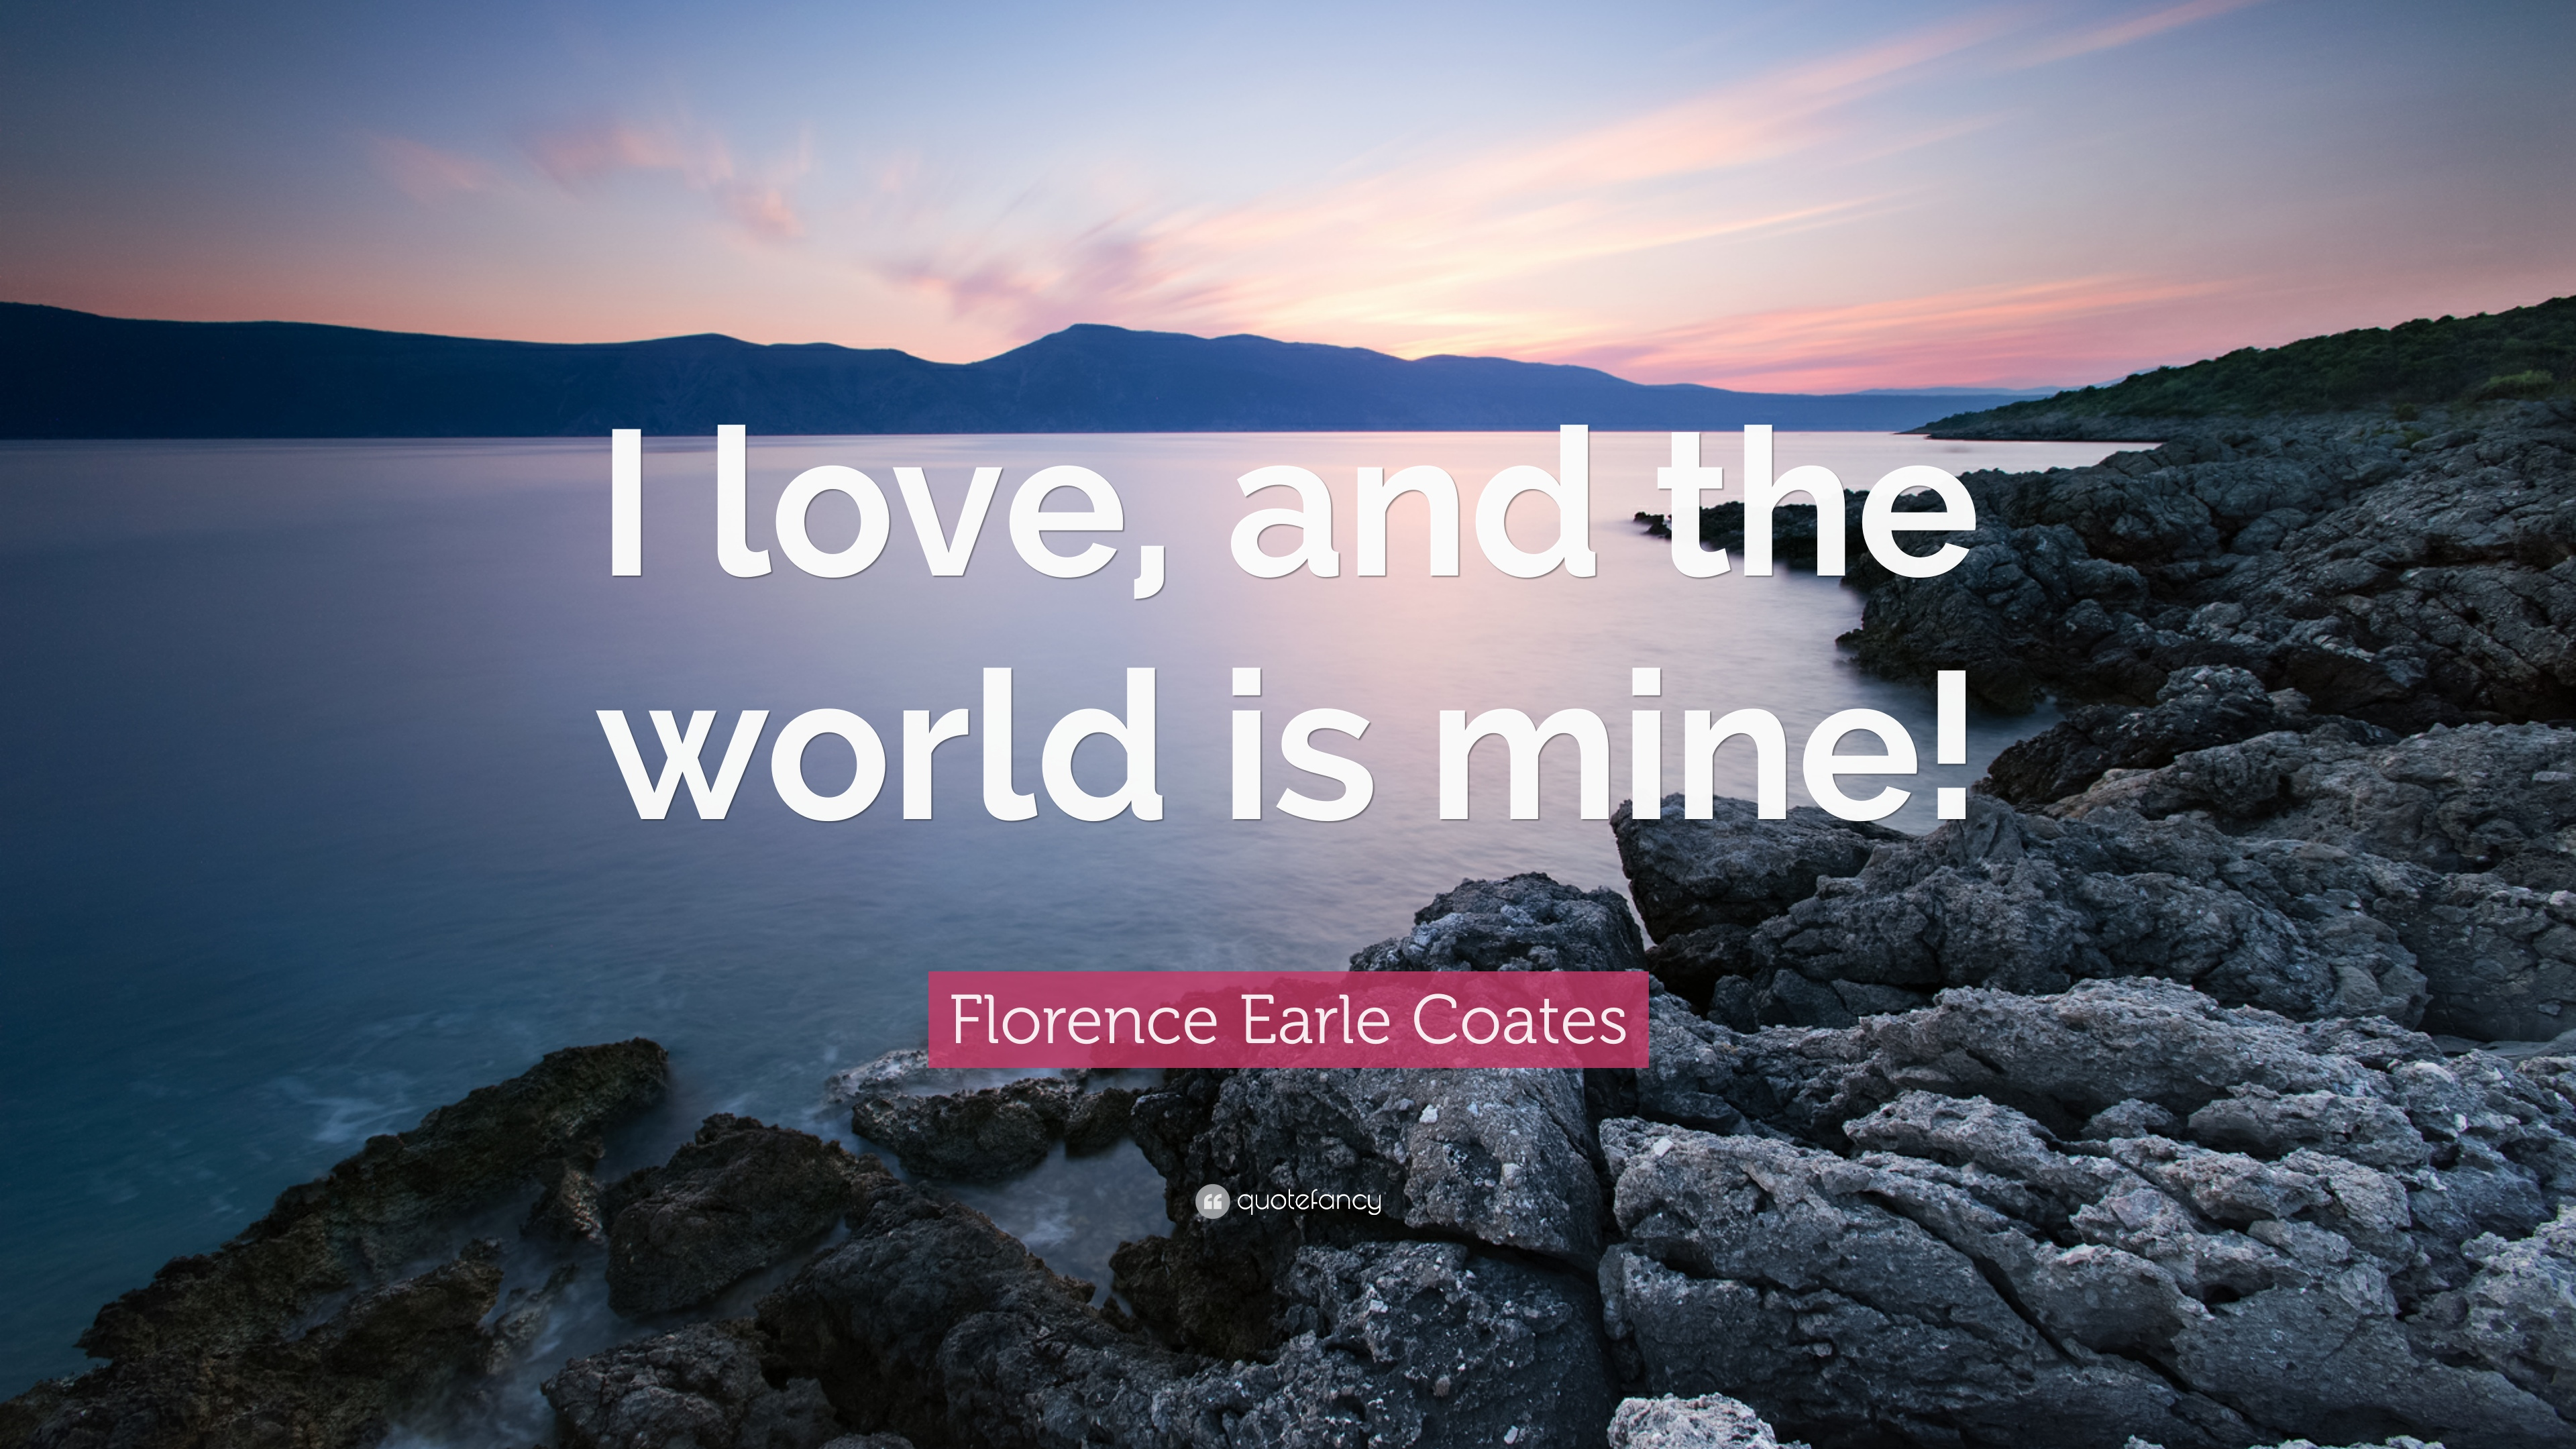 I Love, and the World is Mine